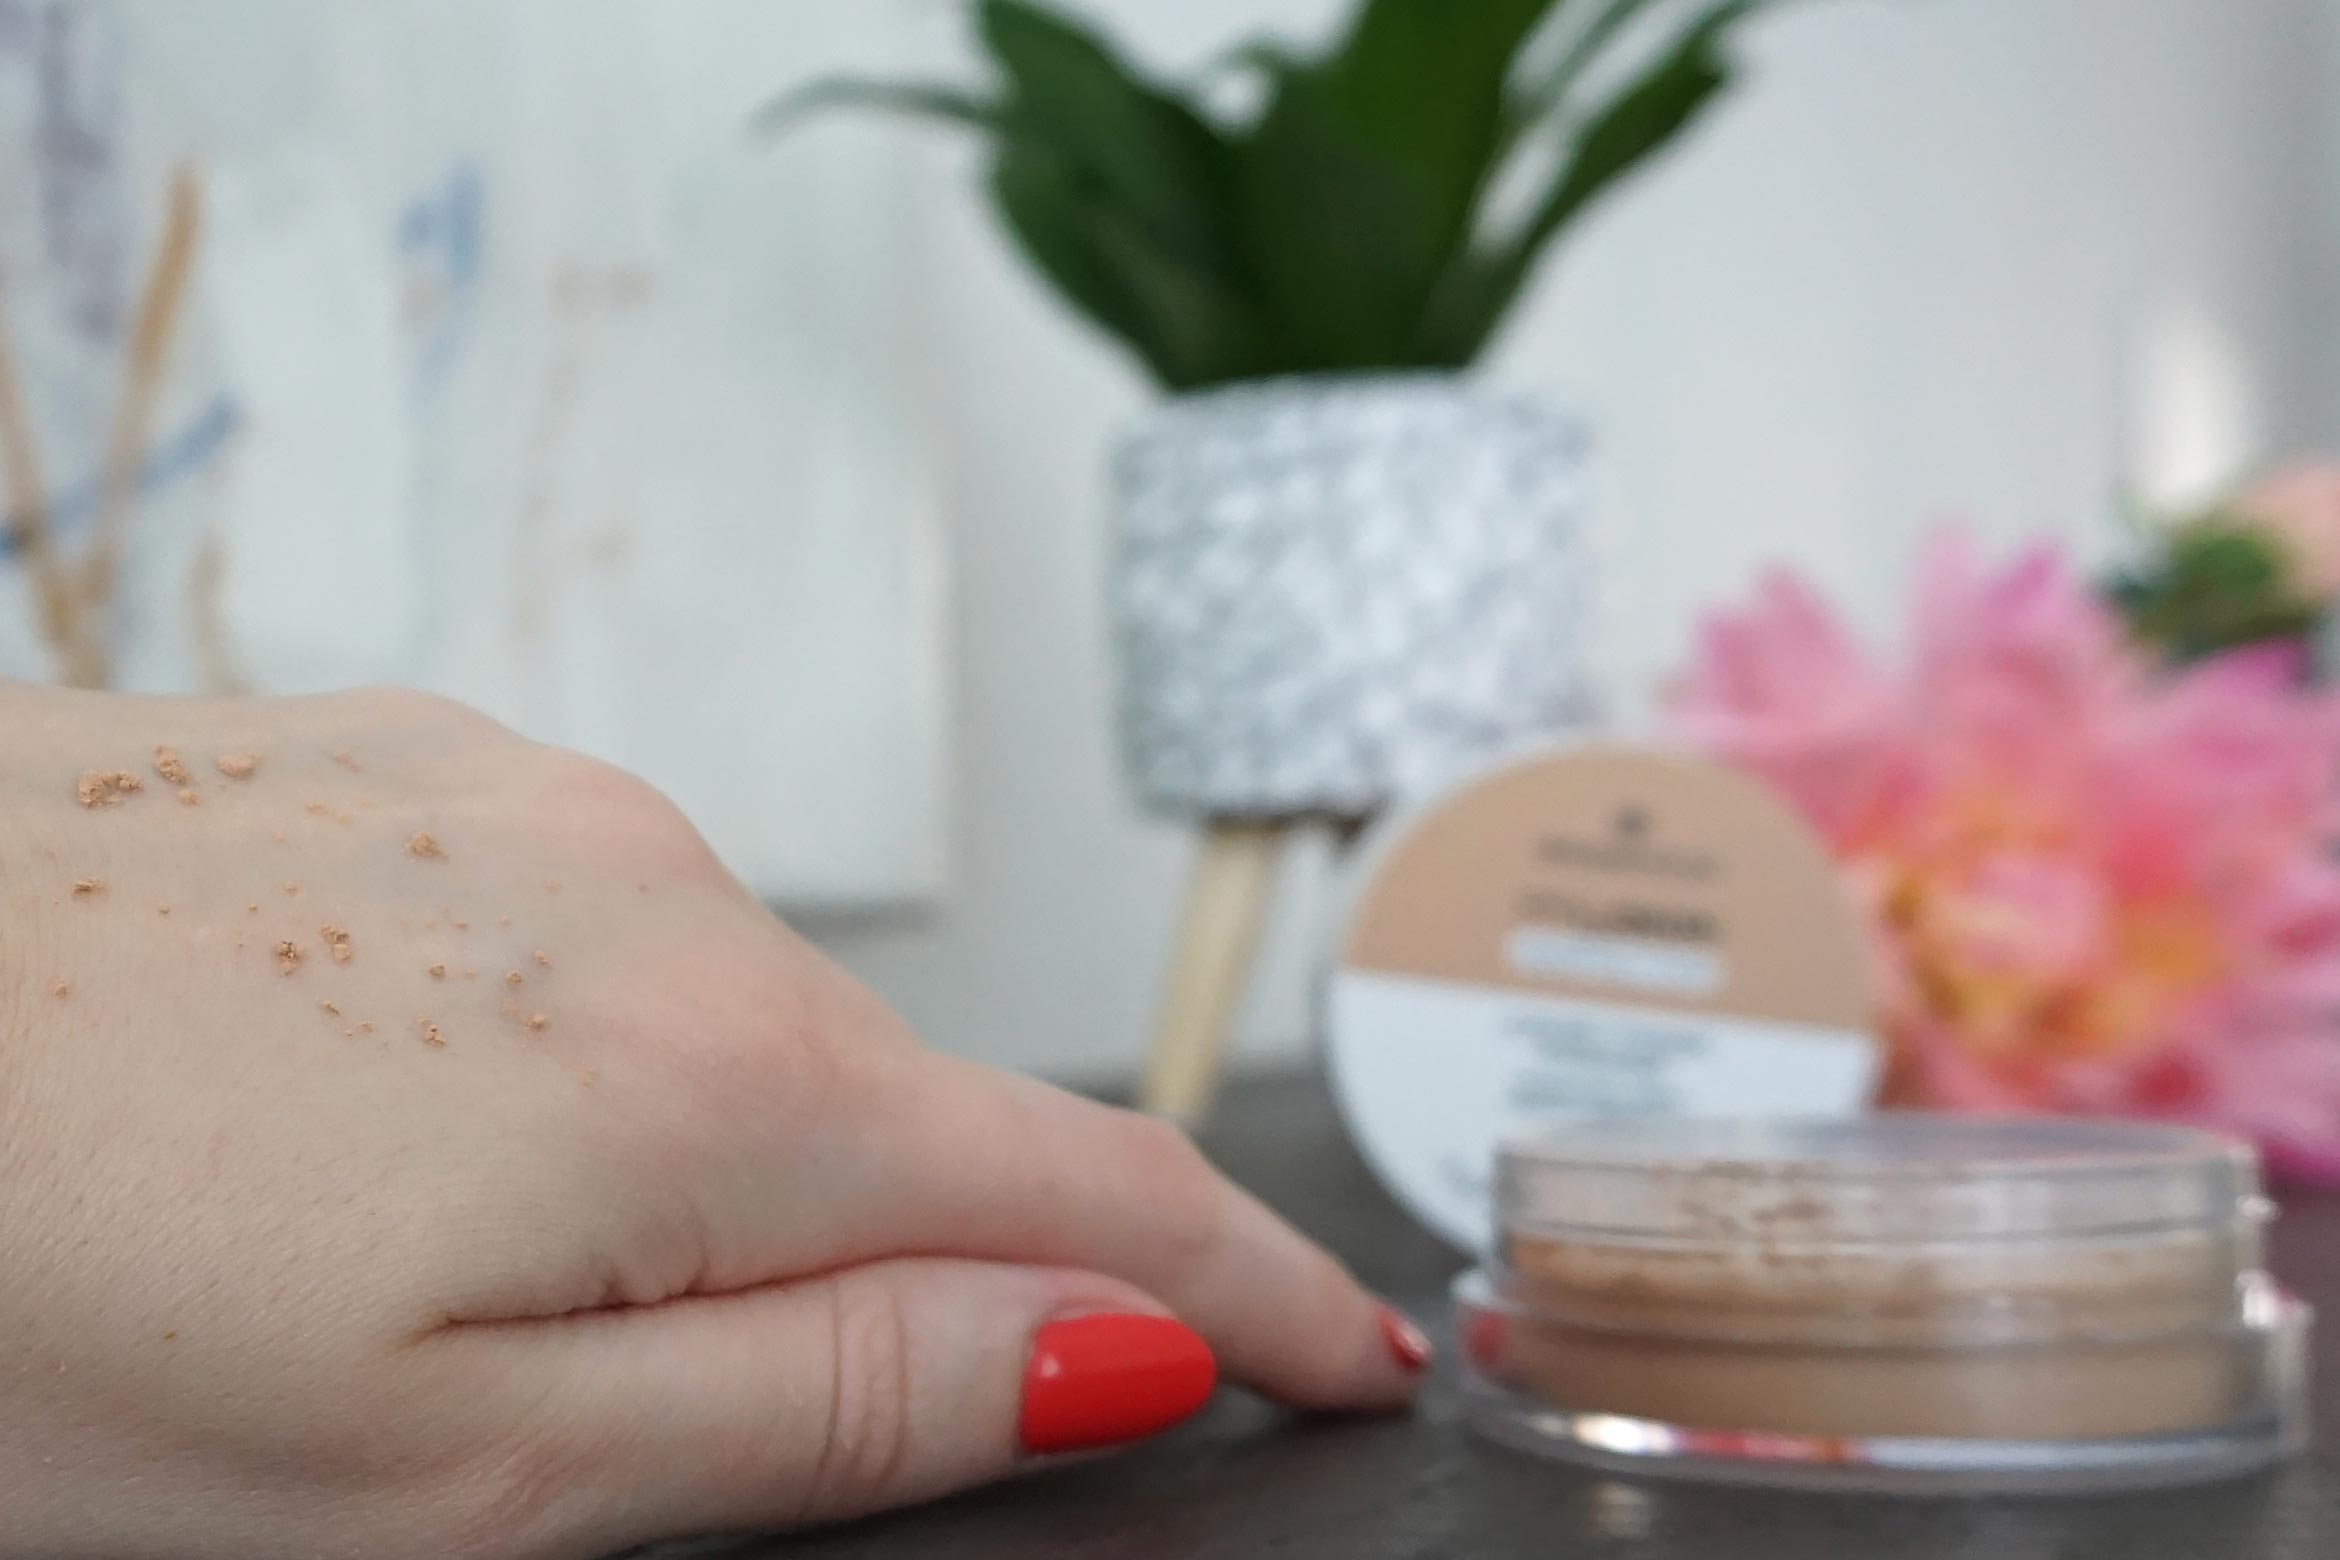 essence my skin perfector loose fixing powder 20 nude swatch review-1